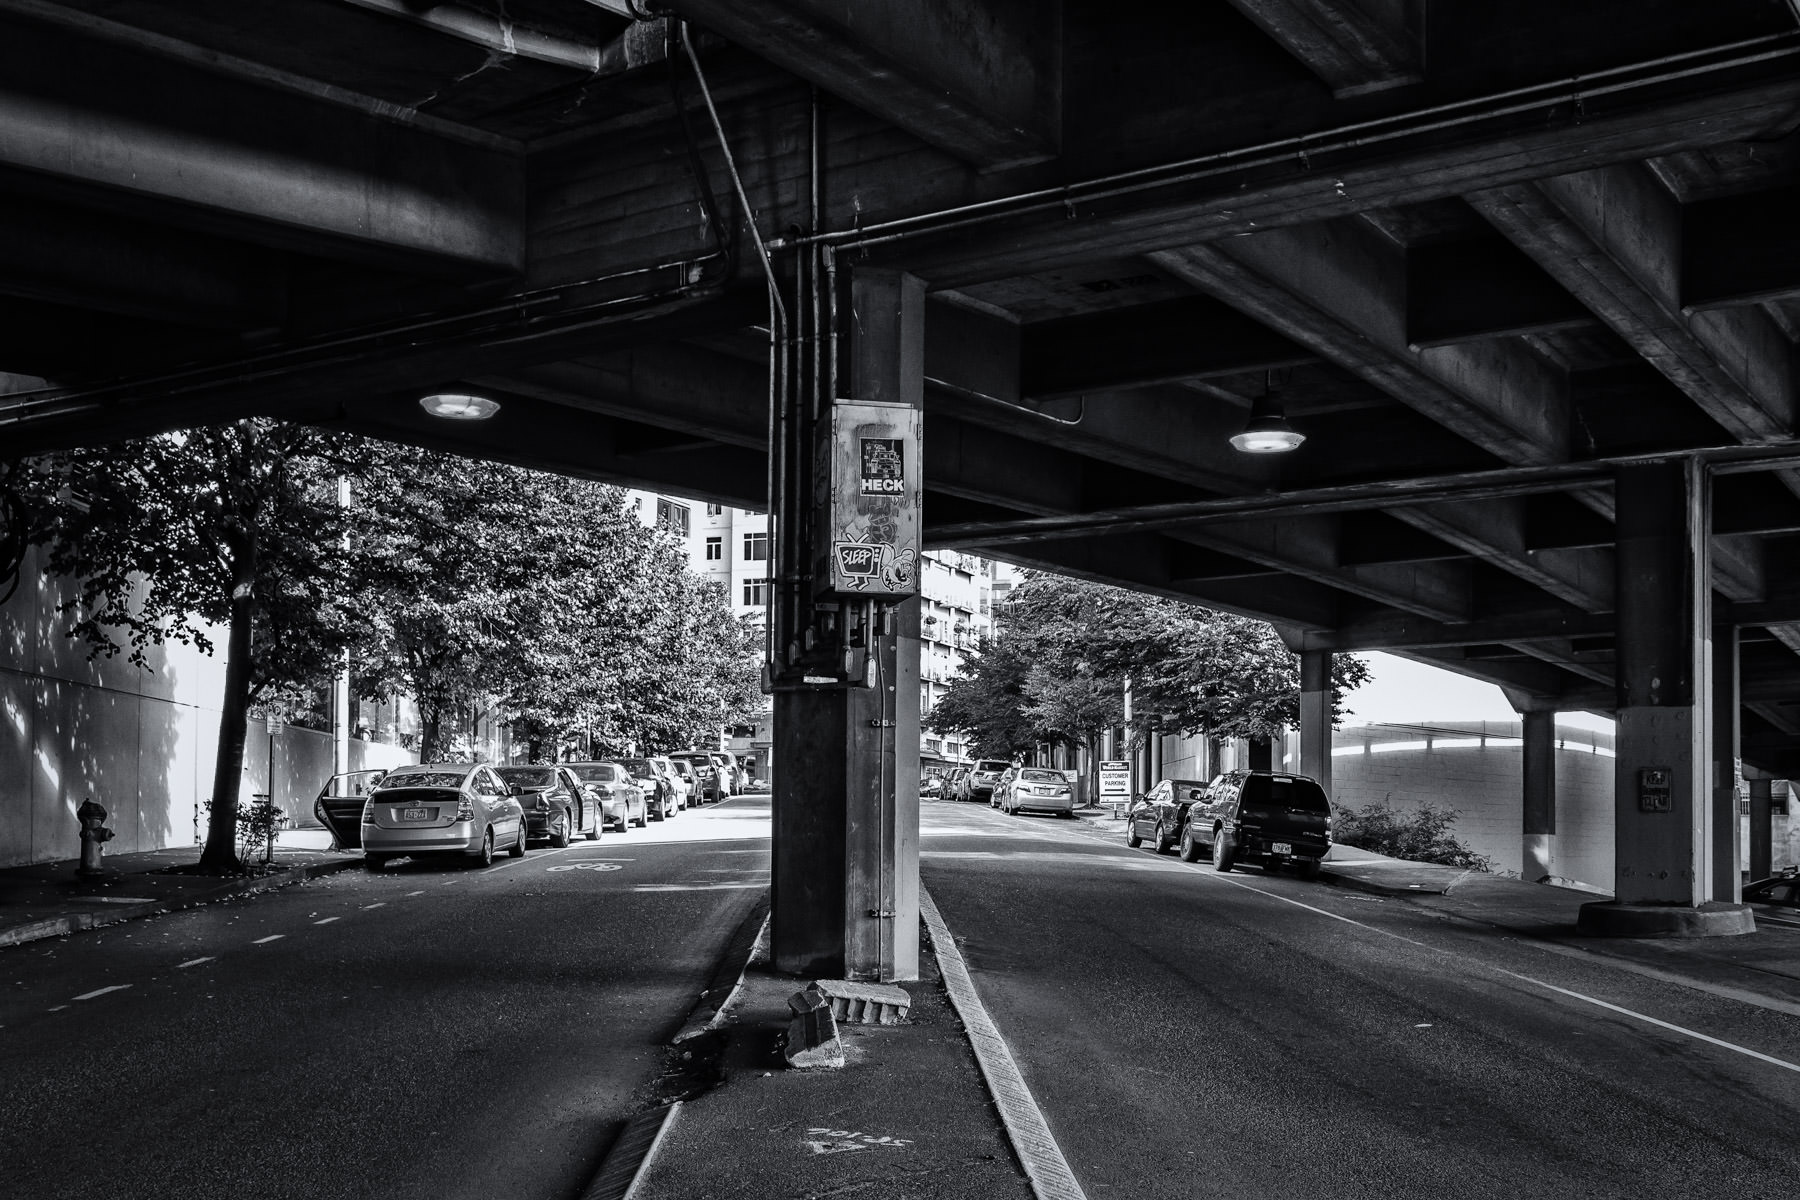 Seattle's Blanchard Street passes under the Alaskan Way Viaduct in the city's Belltown neighborhood.